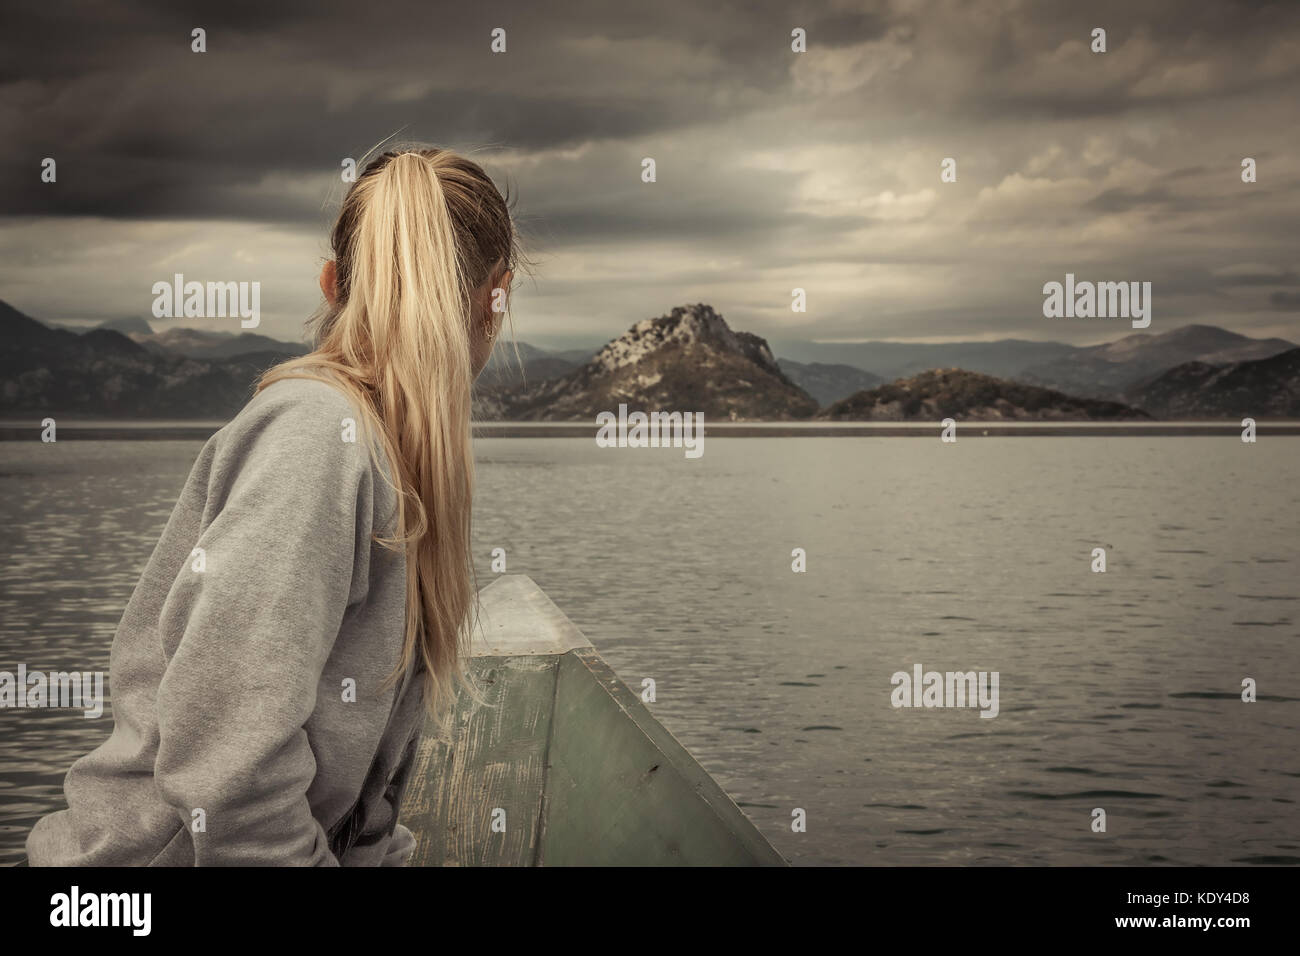 Woman traveler sailing on boat towards shore with with Mountains landscape on horizon in overcast day with dramatic - Stock Image